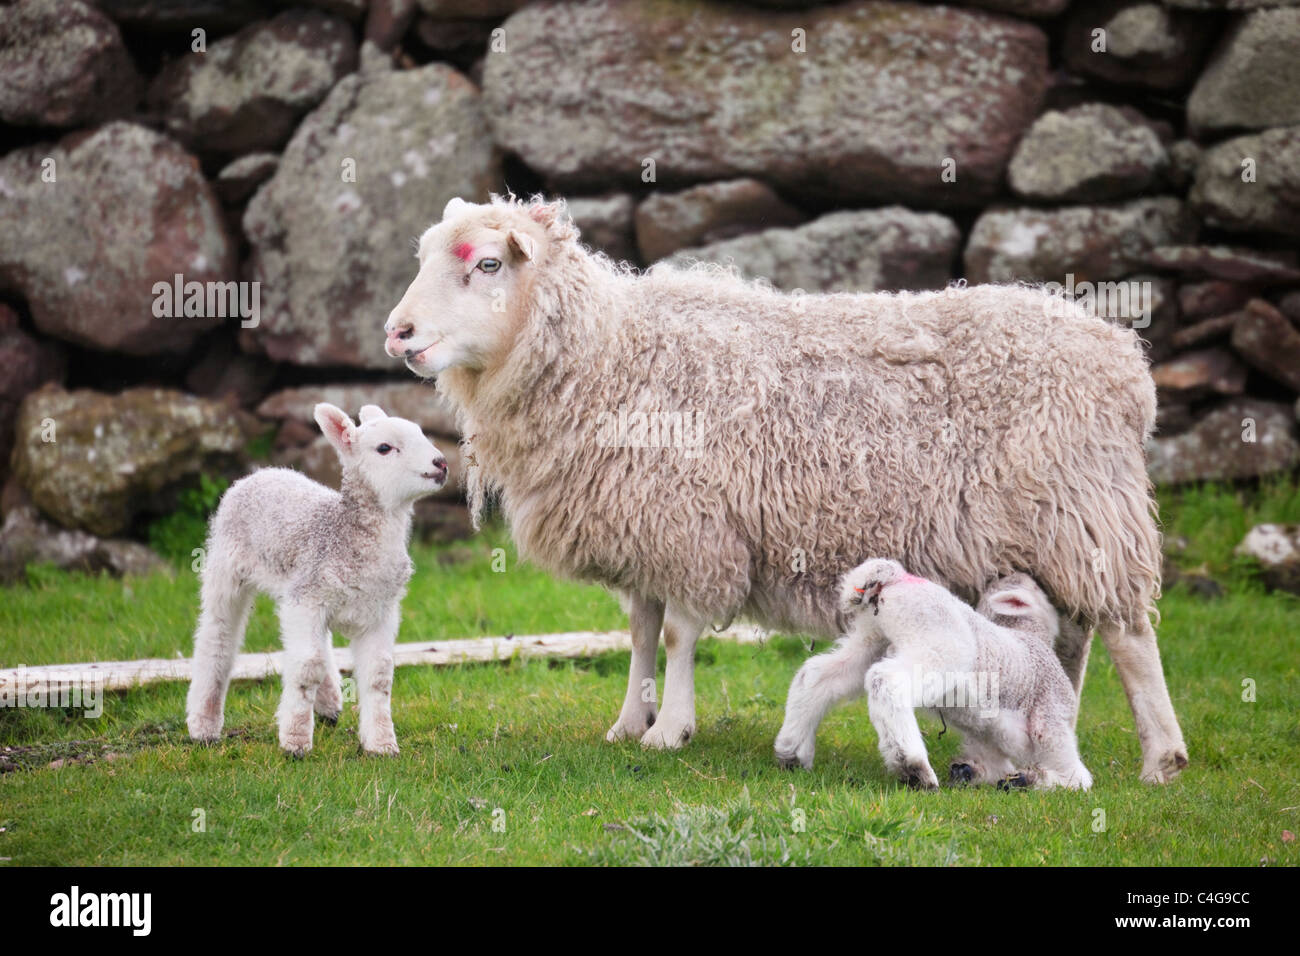 Sheep ewe with two young twin newborn lambs by a stone wall in Scottish countryside. Shetland Islands Scotland UK - Stock Image